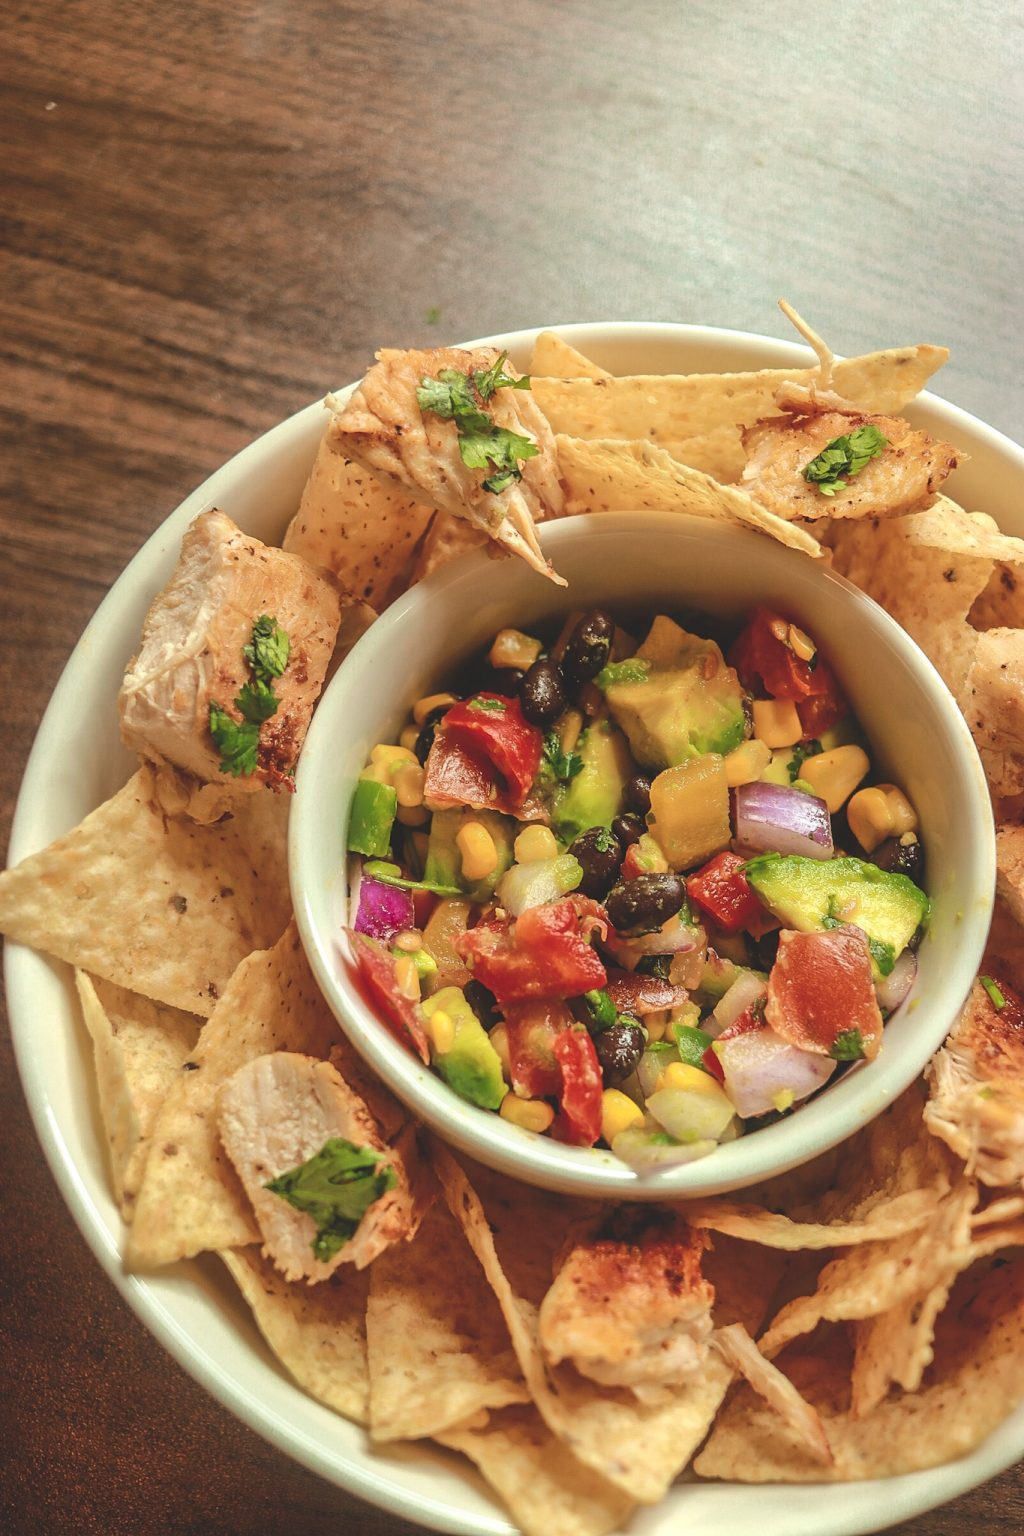 Cowboy Caviar Recipe 2529 1024x1536 - Delicious Chicken Cowboy Caviar Recipe For The Dip Lover